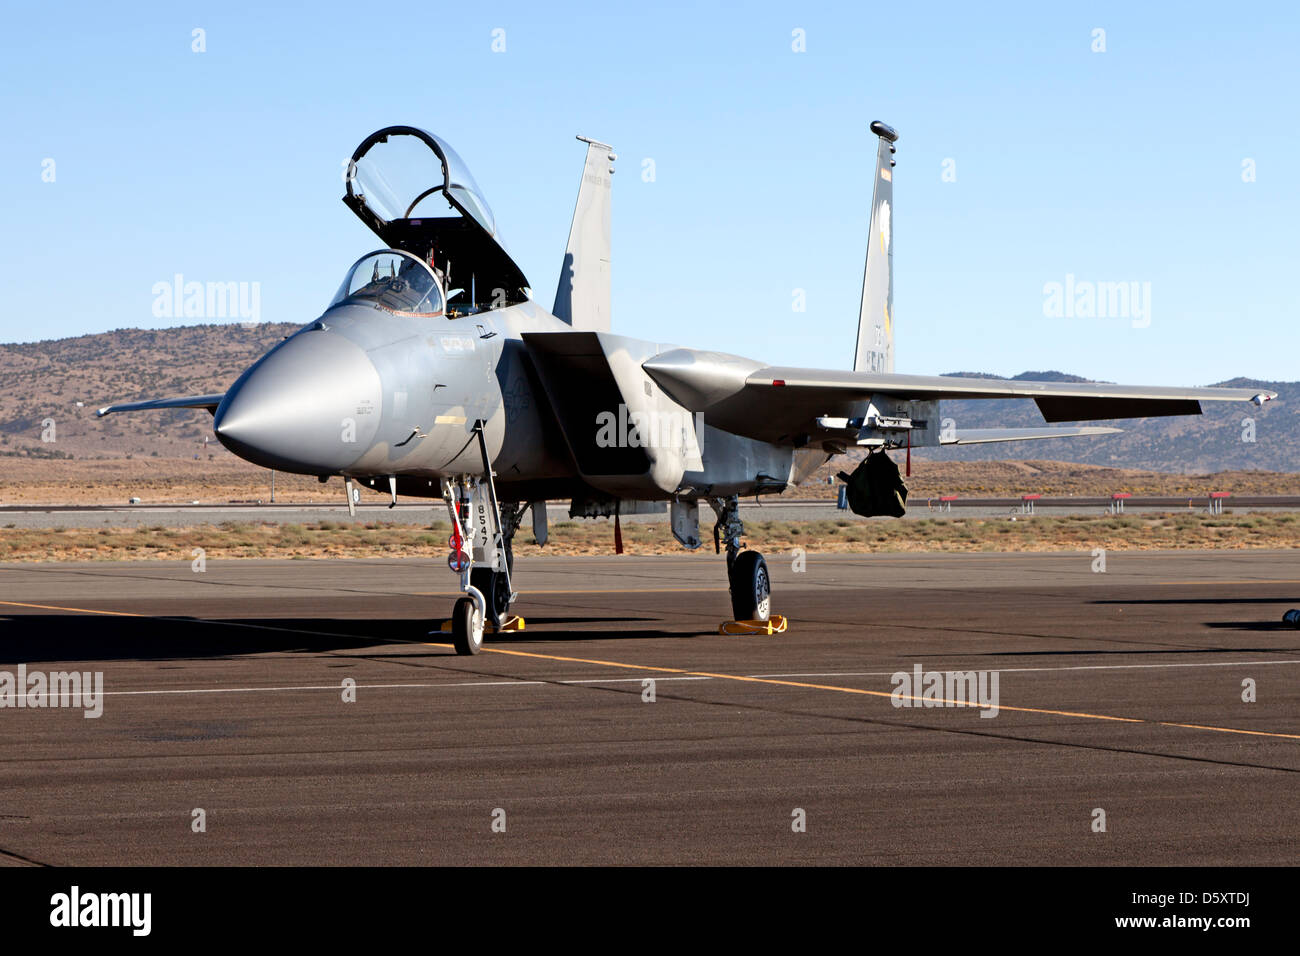 Oregon Air National Guard F-15 Eagle of the 173rd Fighter Wing - Stock Image